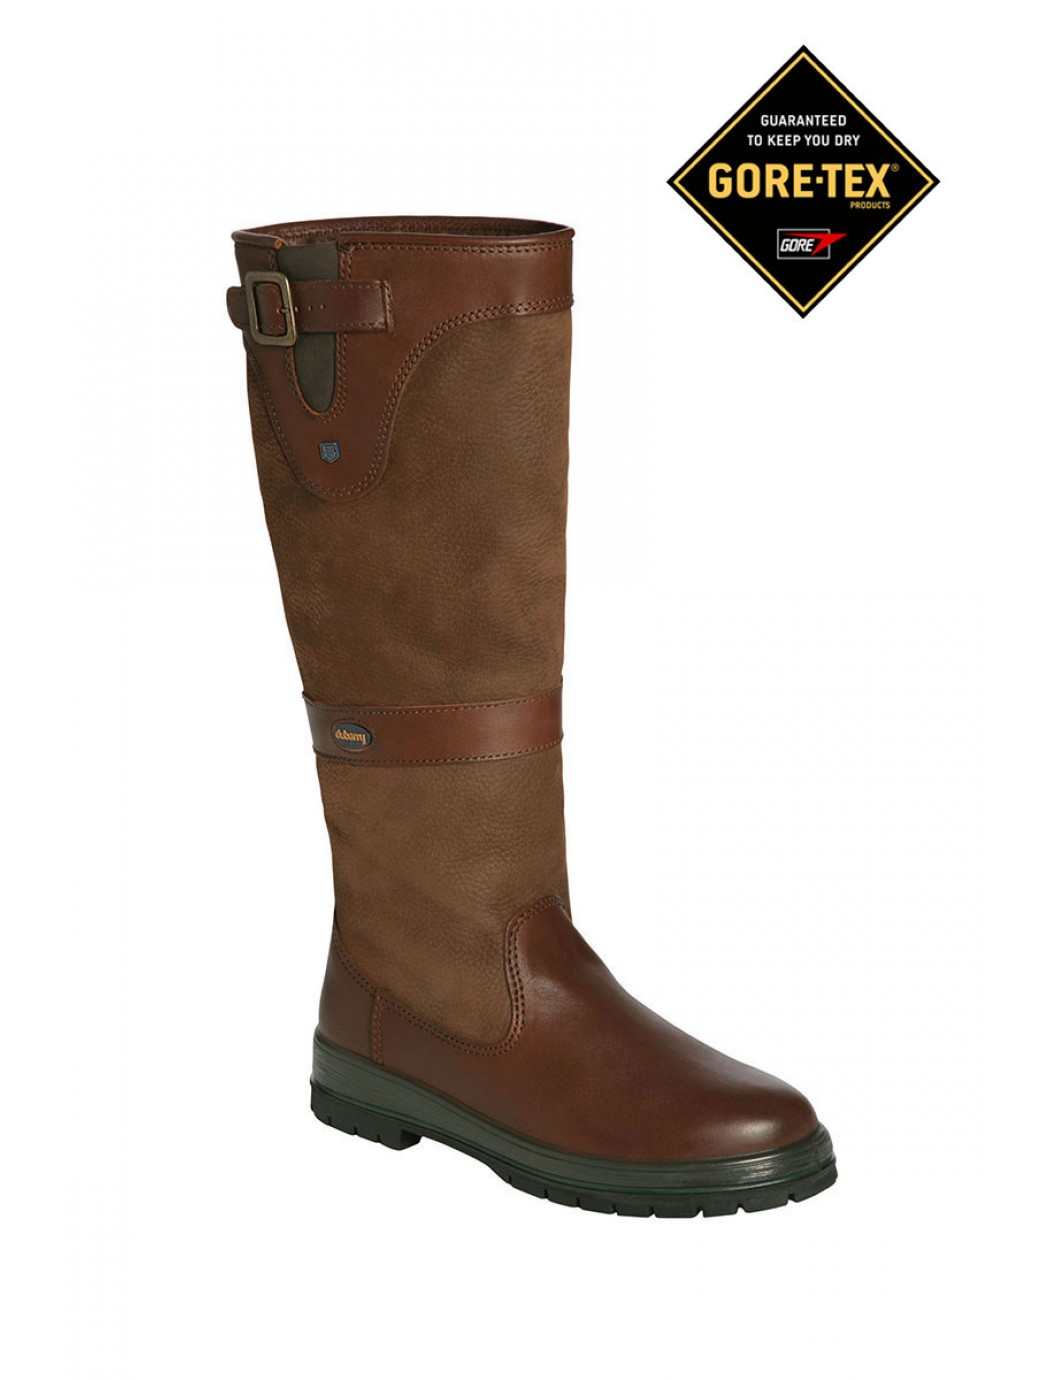 tipperary-country-boots-walnut 1